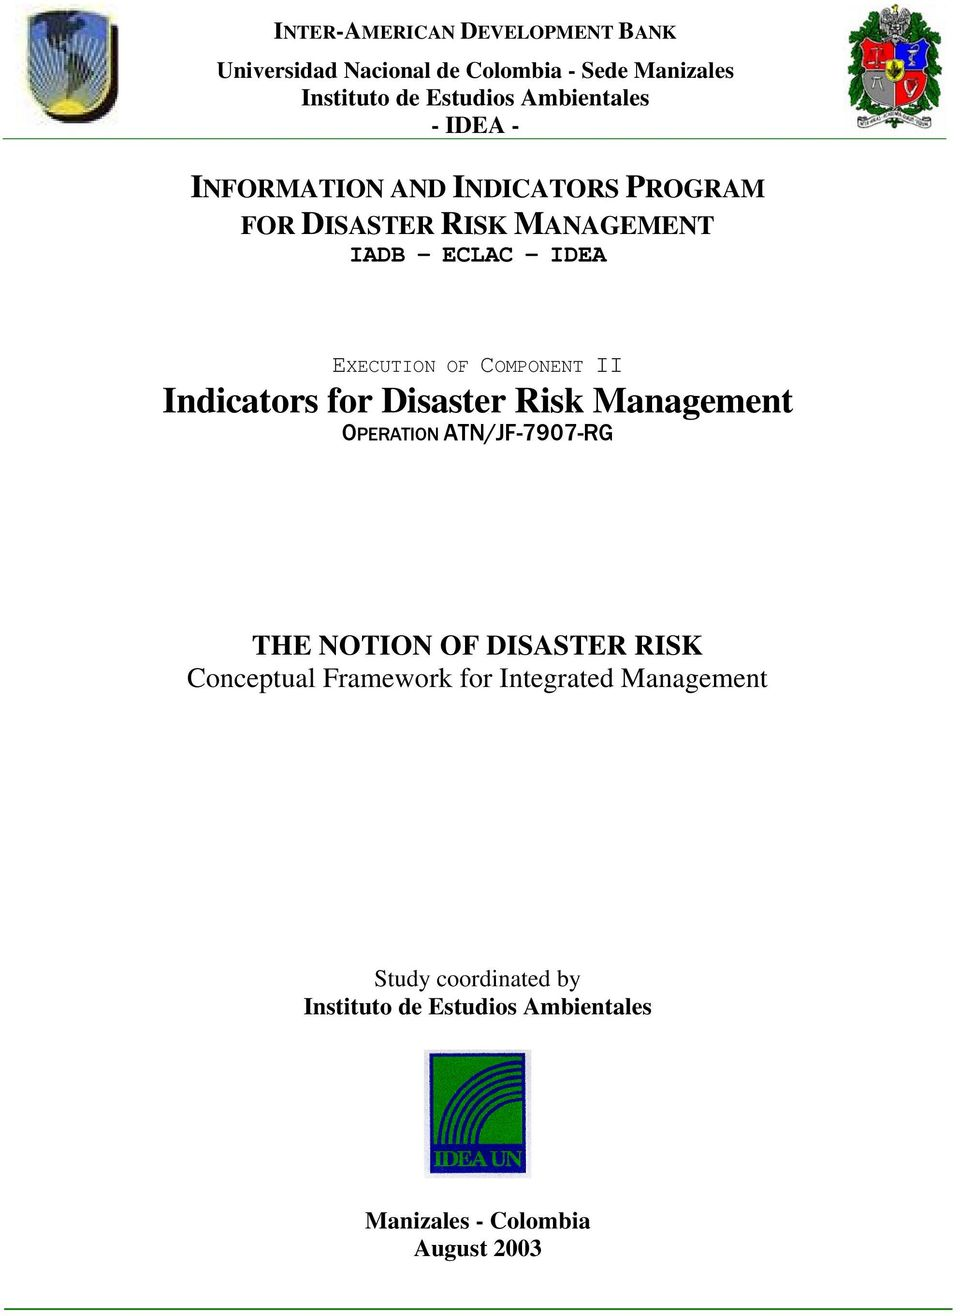 Management OPERATION ATN/JF-7907-RG THE NOTION OF DISASTER RISK Conceptual Framework for